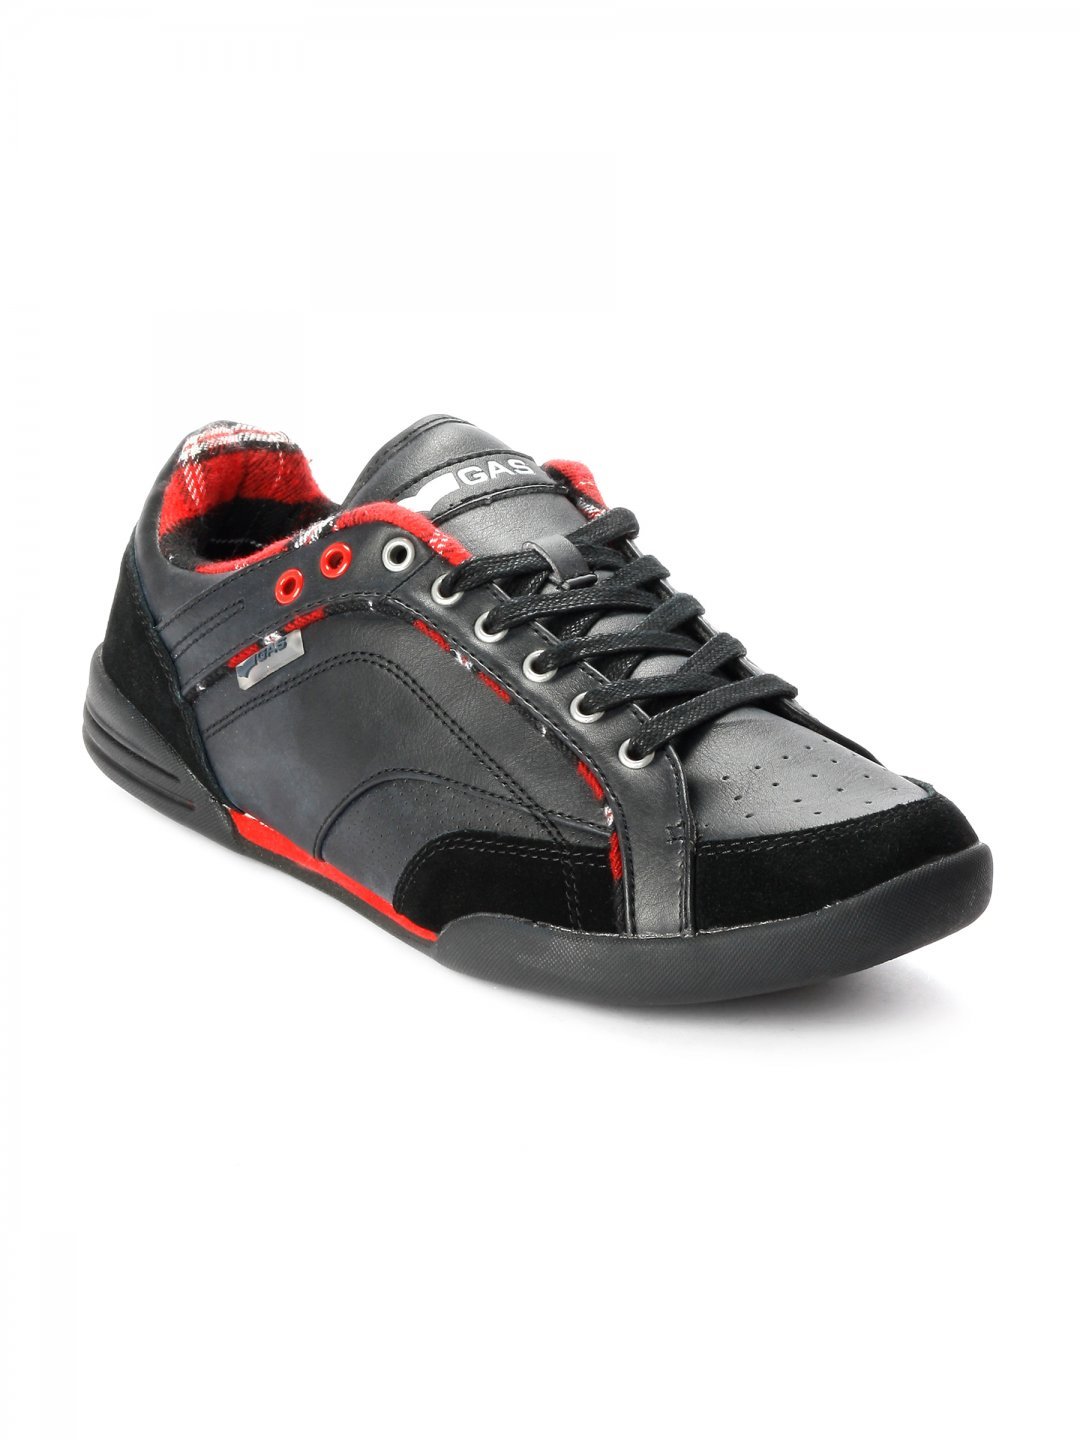 Gas Europa Casual Shoe at Rs.1500